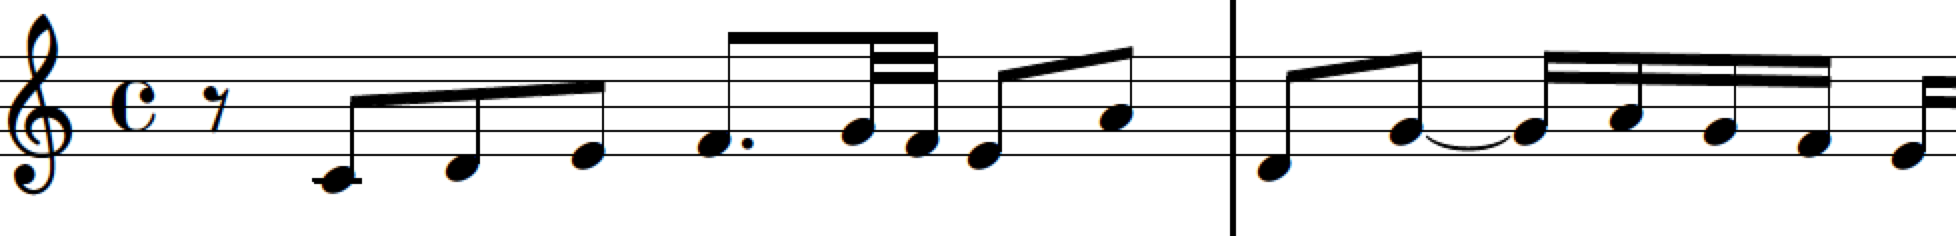 Theme of Fugue 1 in C Major